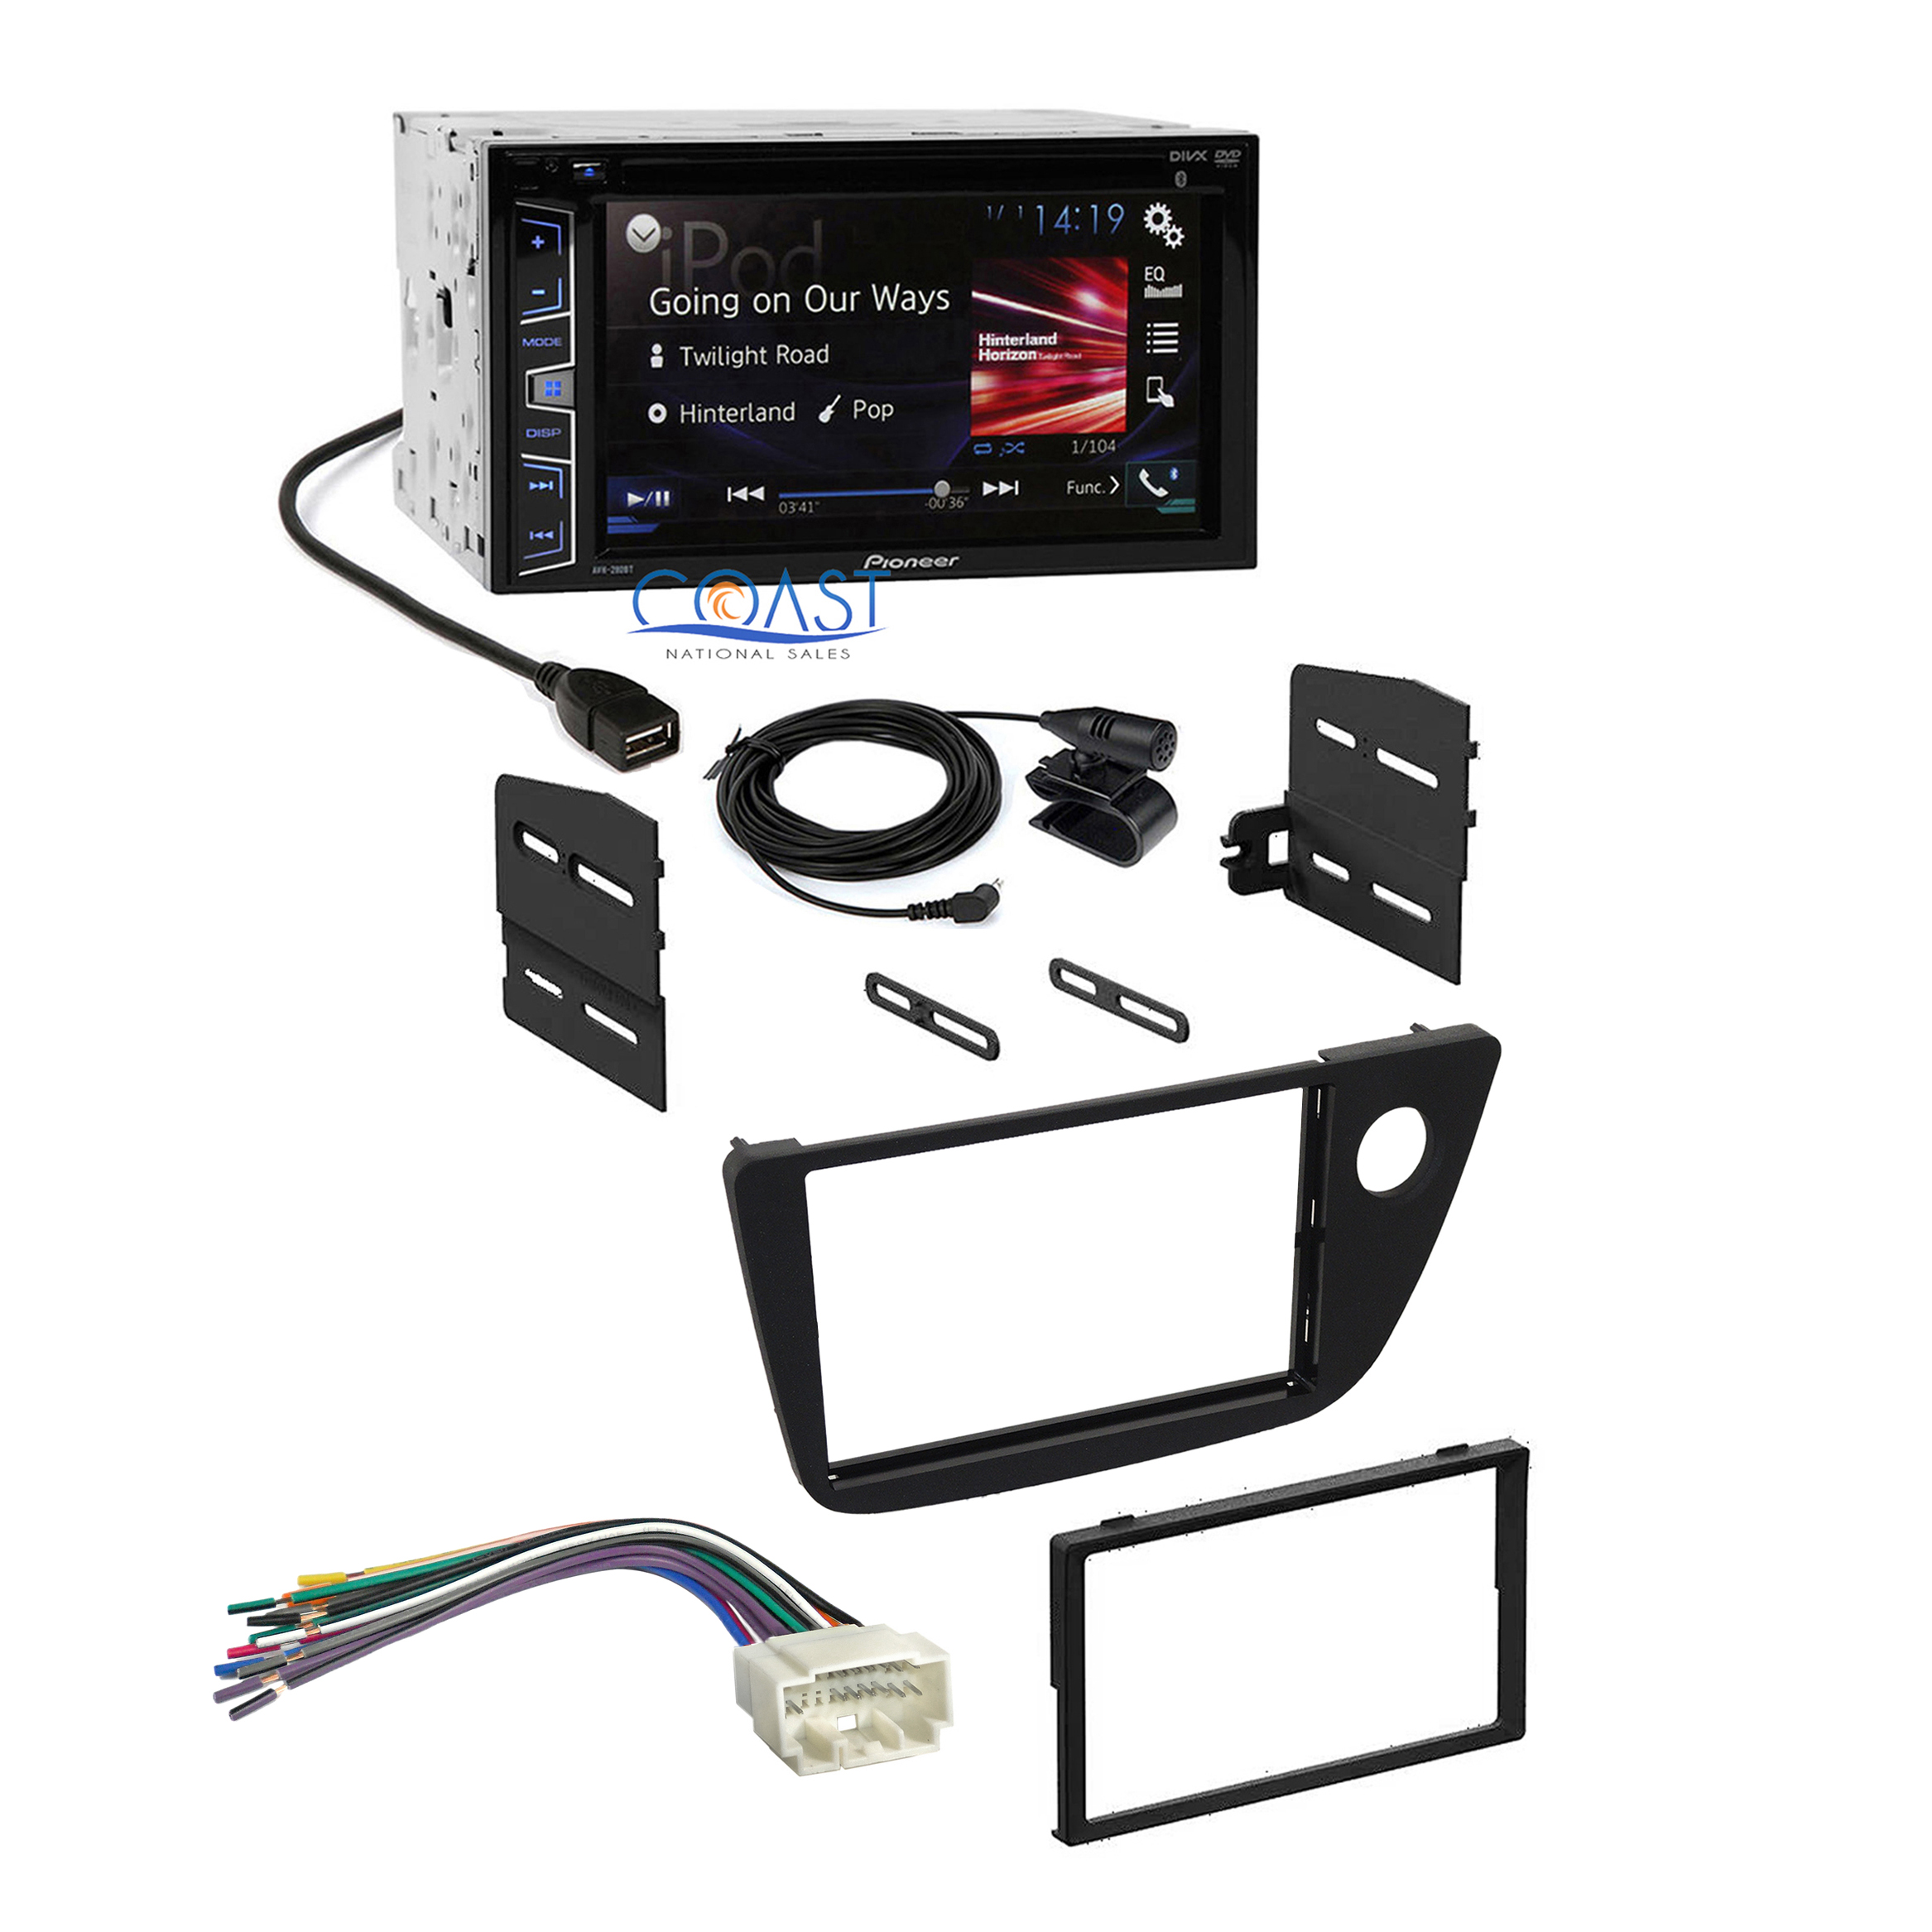 details about pioneer 2016 car radio stereo 2-din dash kit wire harness for  2002-06 acura rsx